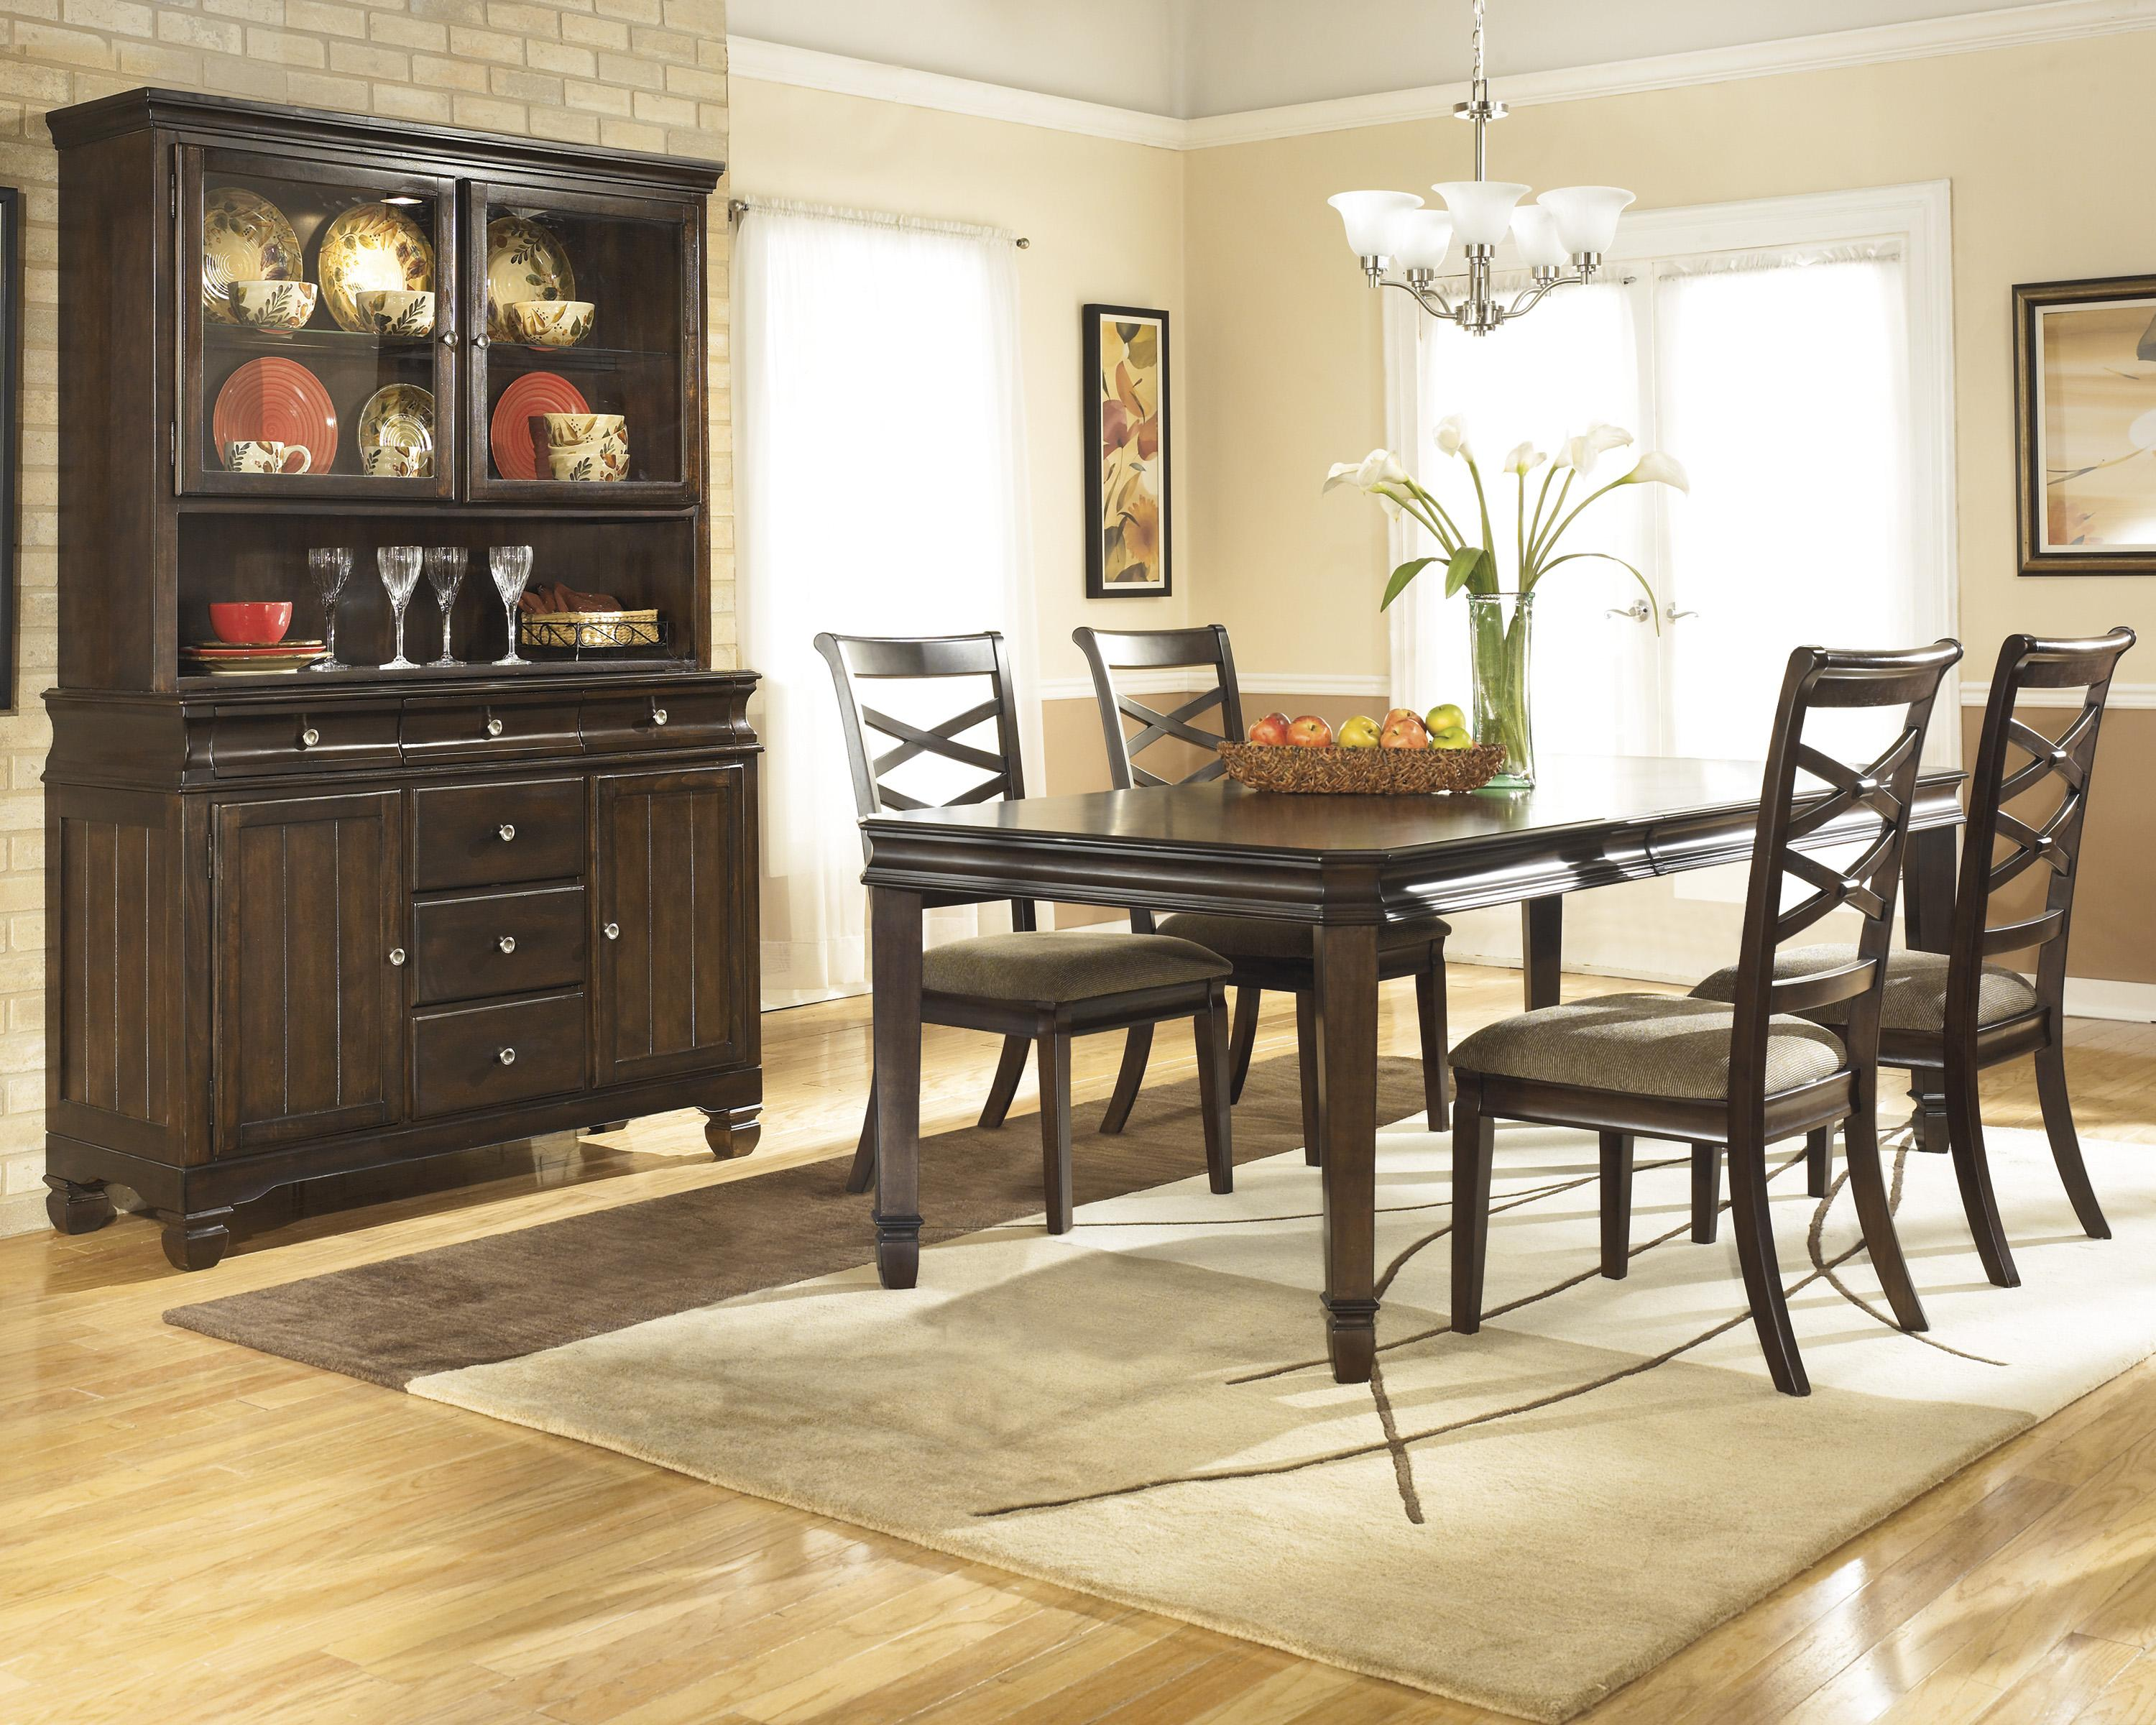 Ashley Furniture Hayley Casual Dining Room Group - Item Number: D480 Dining Room Group 1